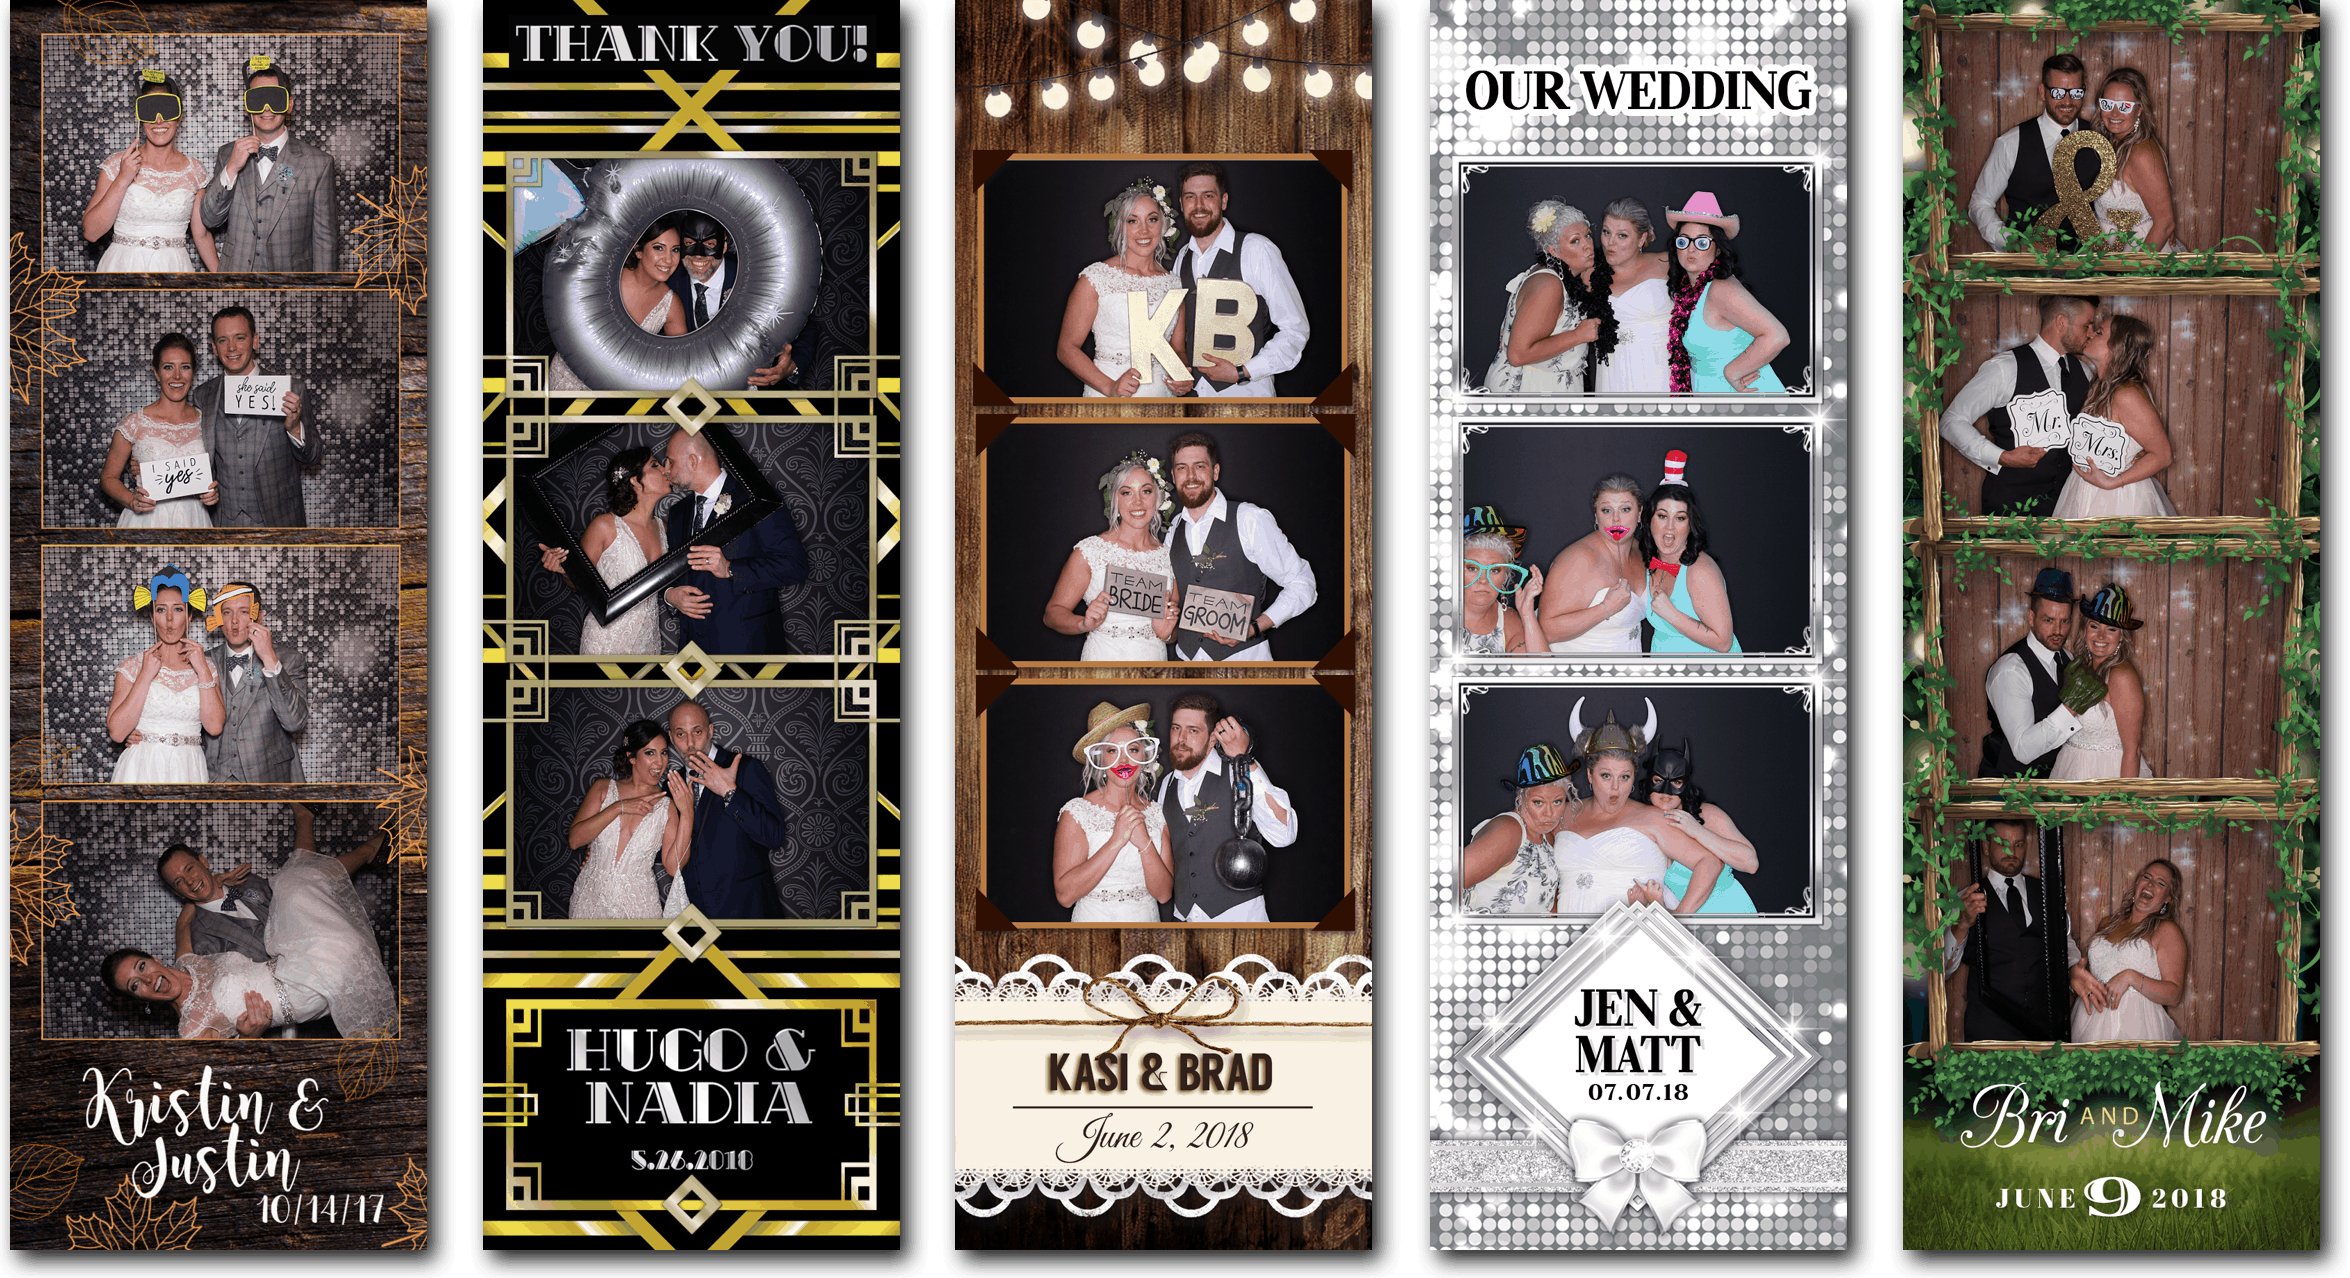 1Wedding Gallery 2x6